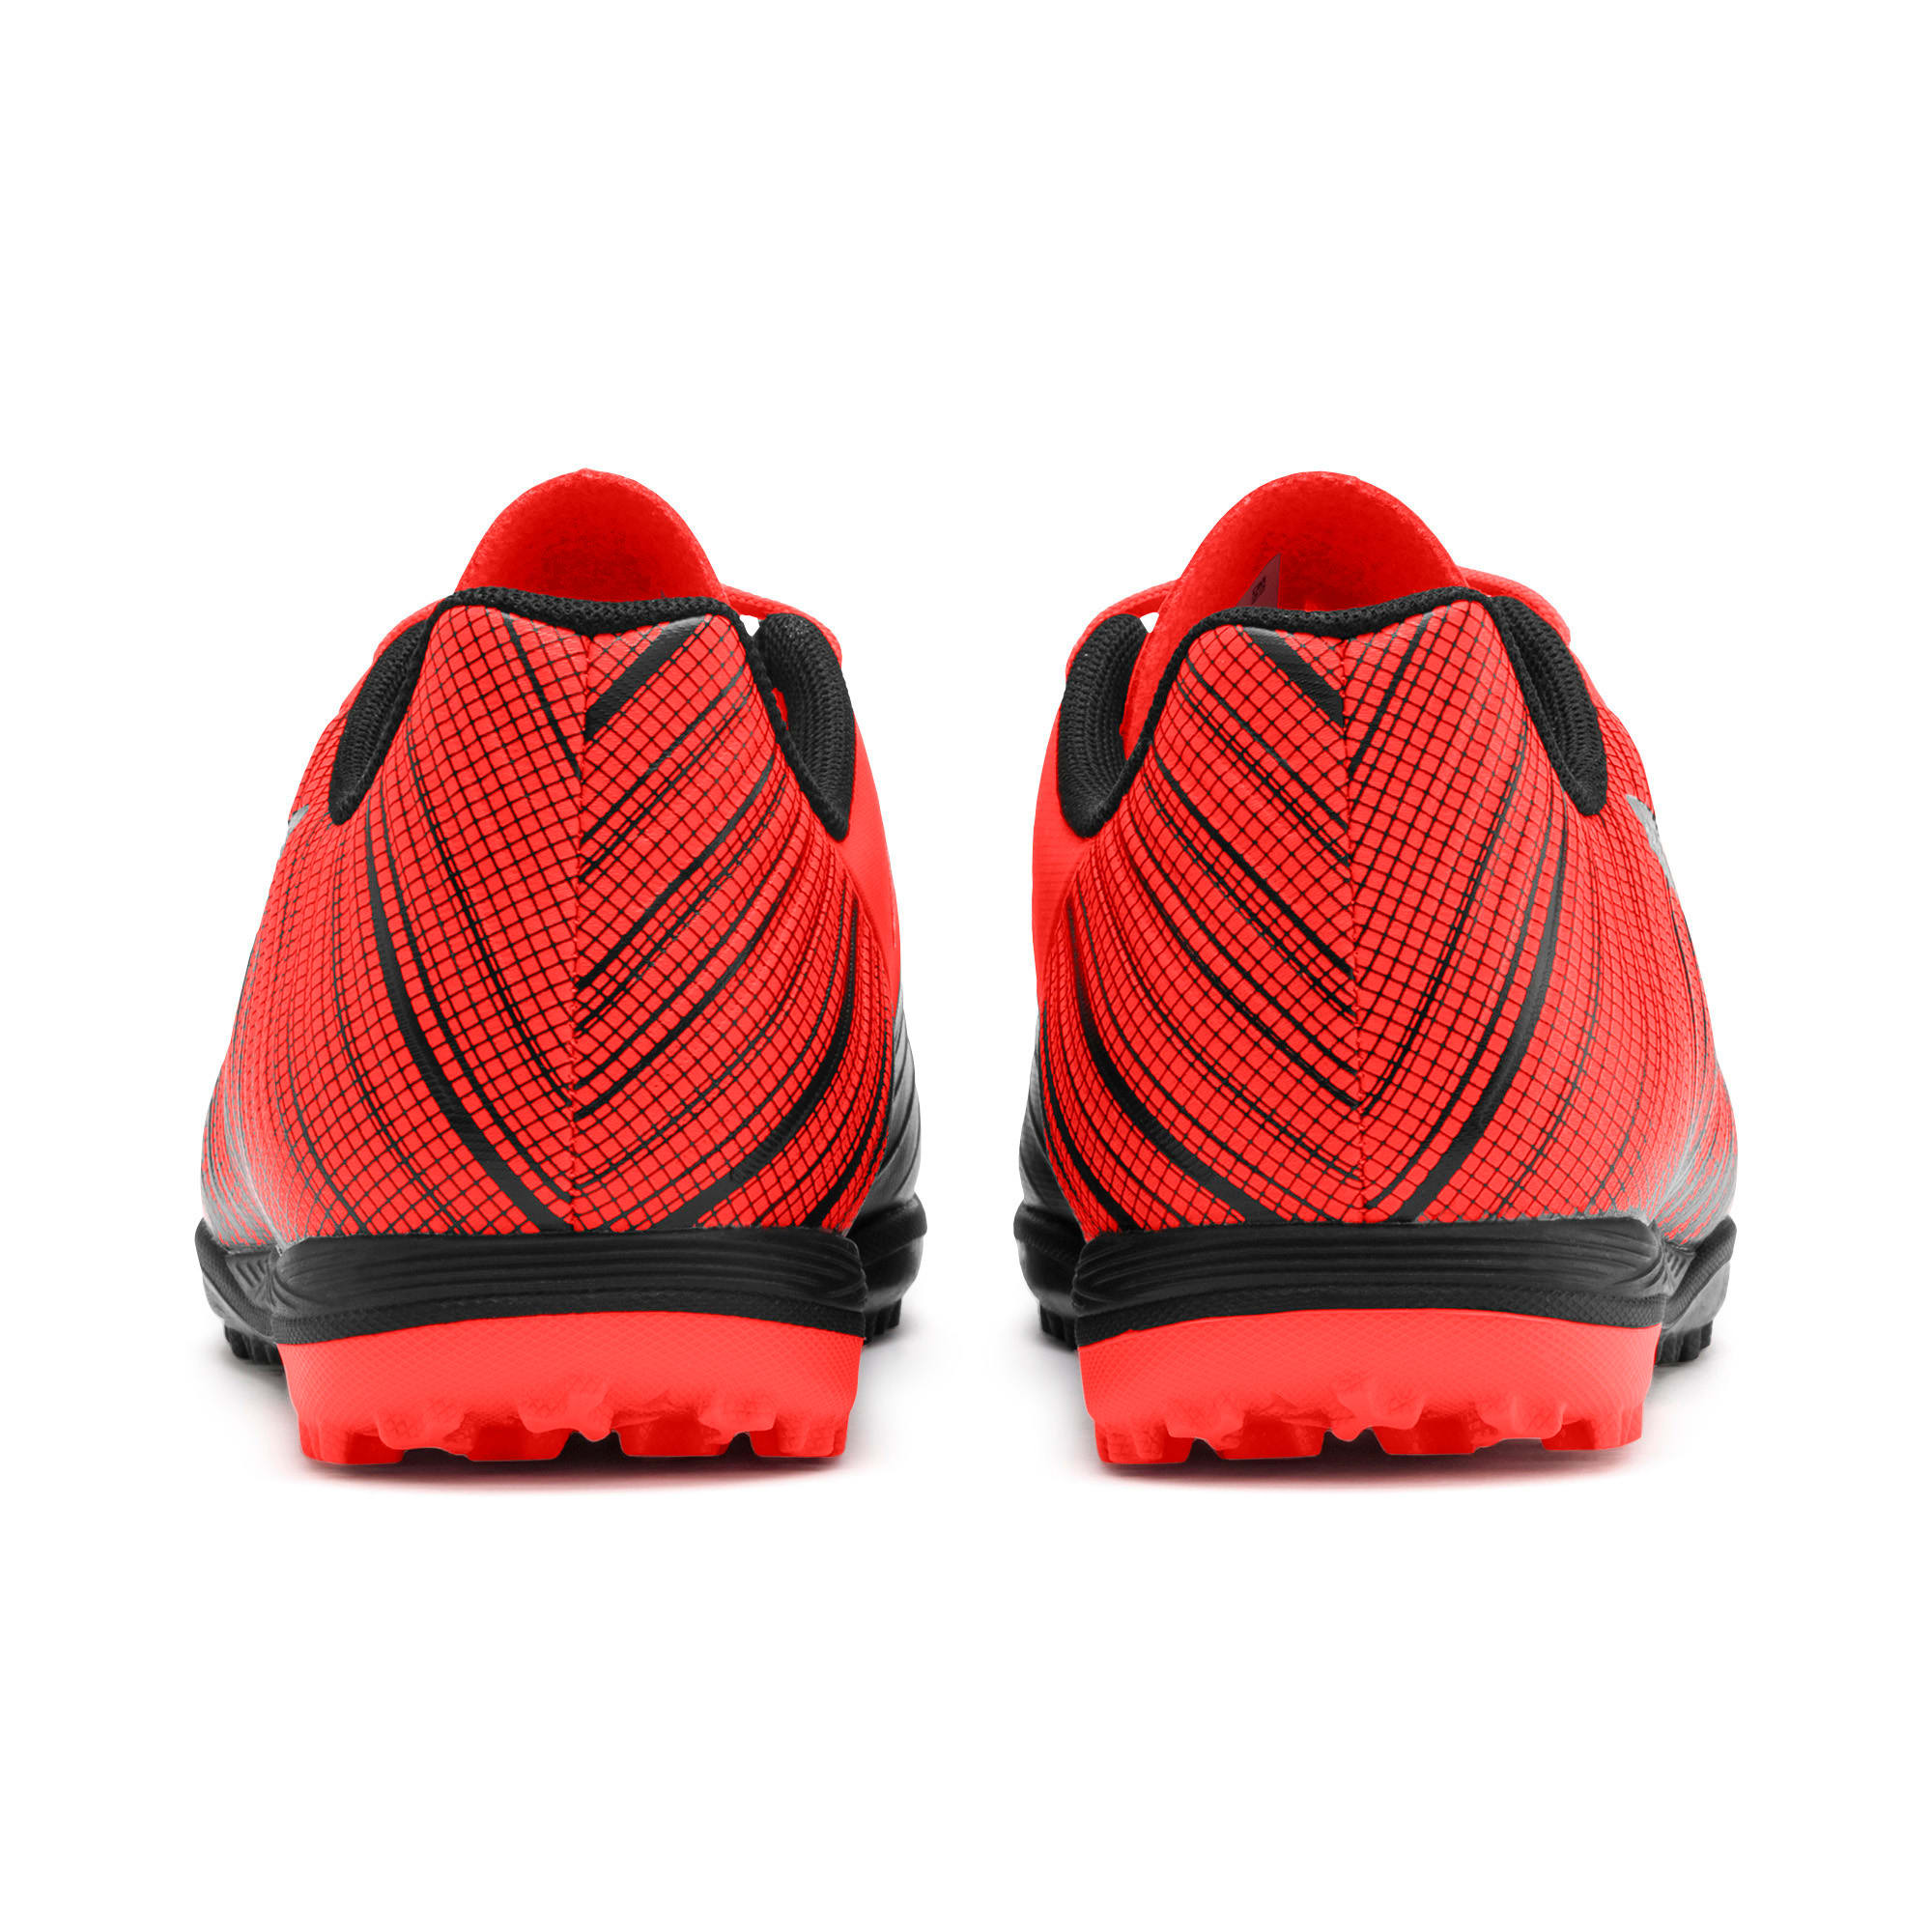 Thumbnail 3 of PUMA ONE 5.4 TT Youth Football Boots, Black-Nrgy Red-Aged Silver, medium-IND